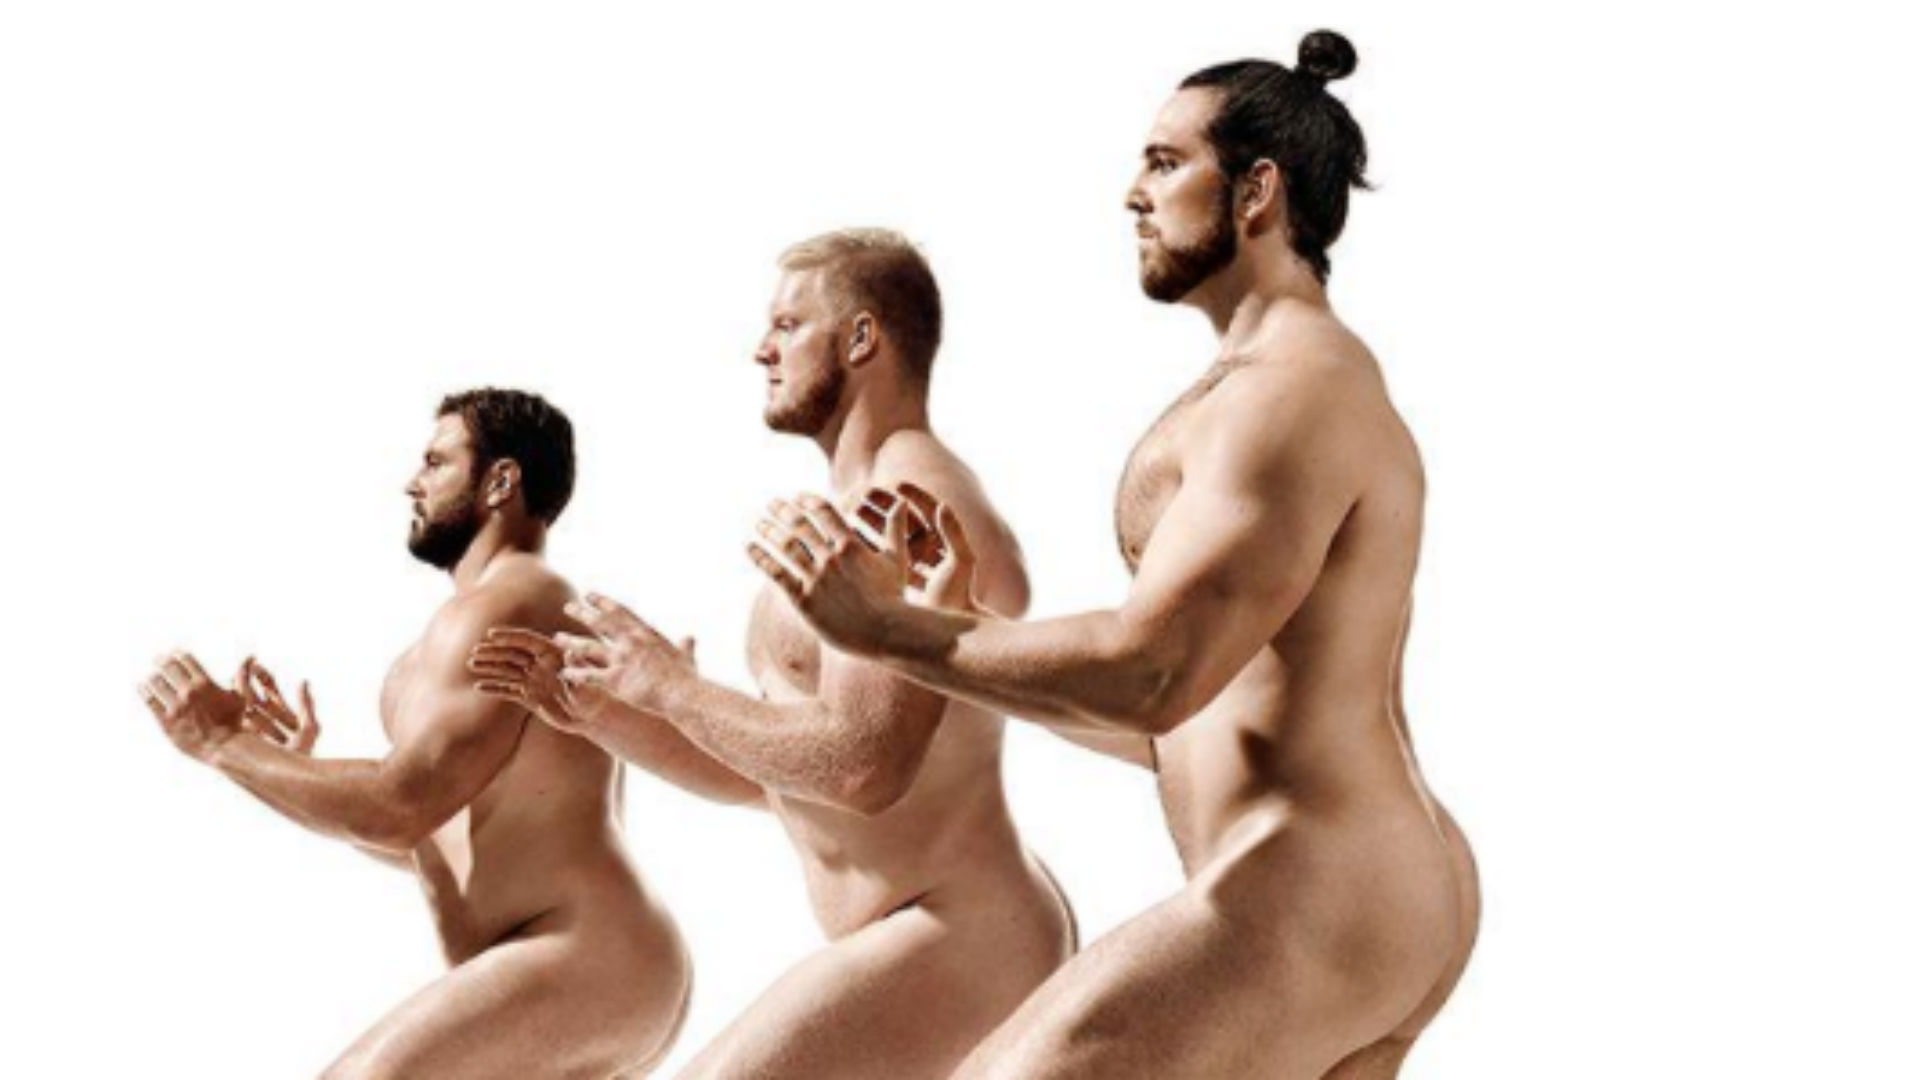 Colts offensive linemen go almost naked for ESPN 'Body Issue'